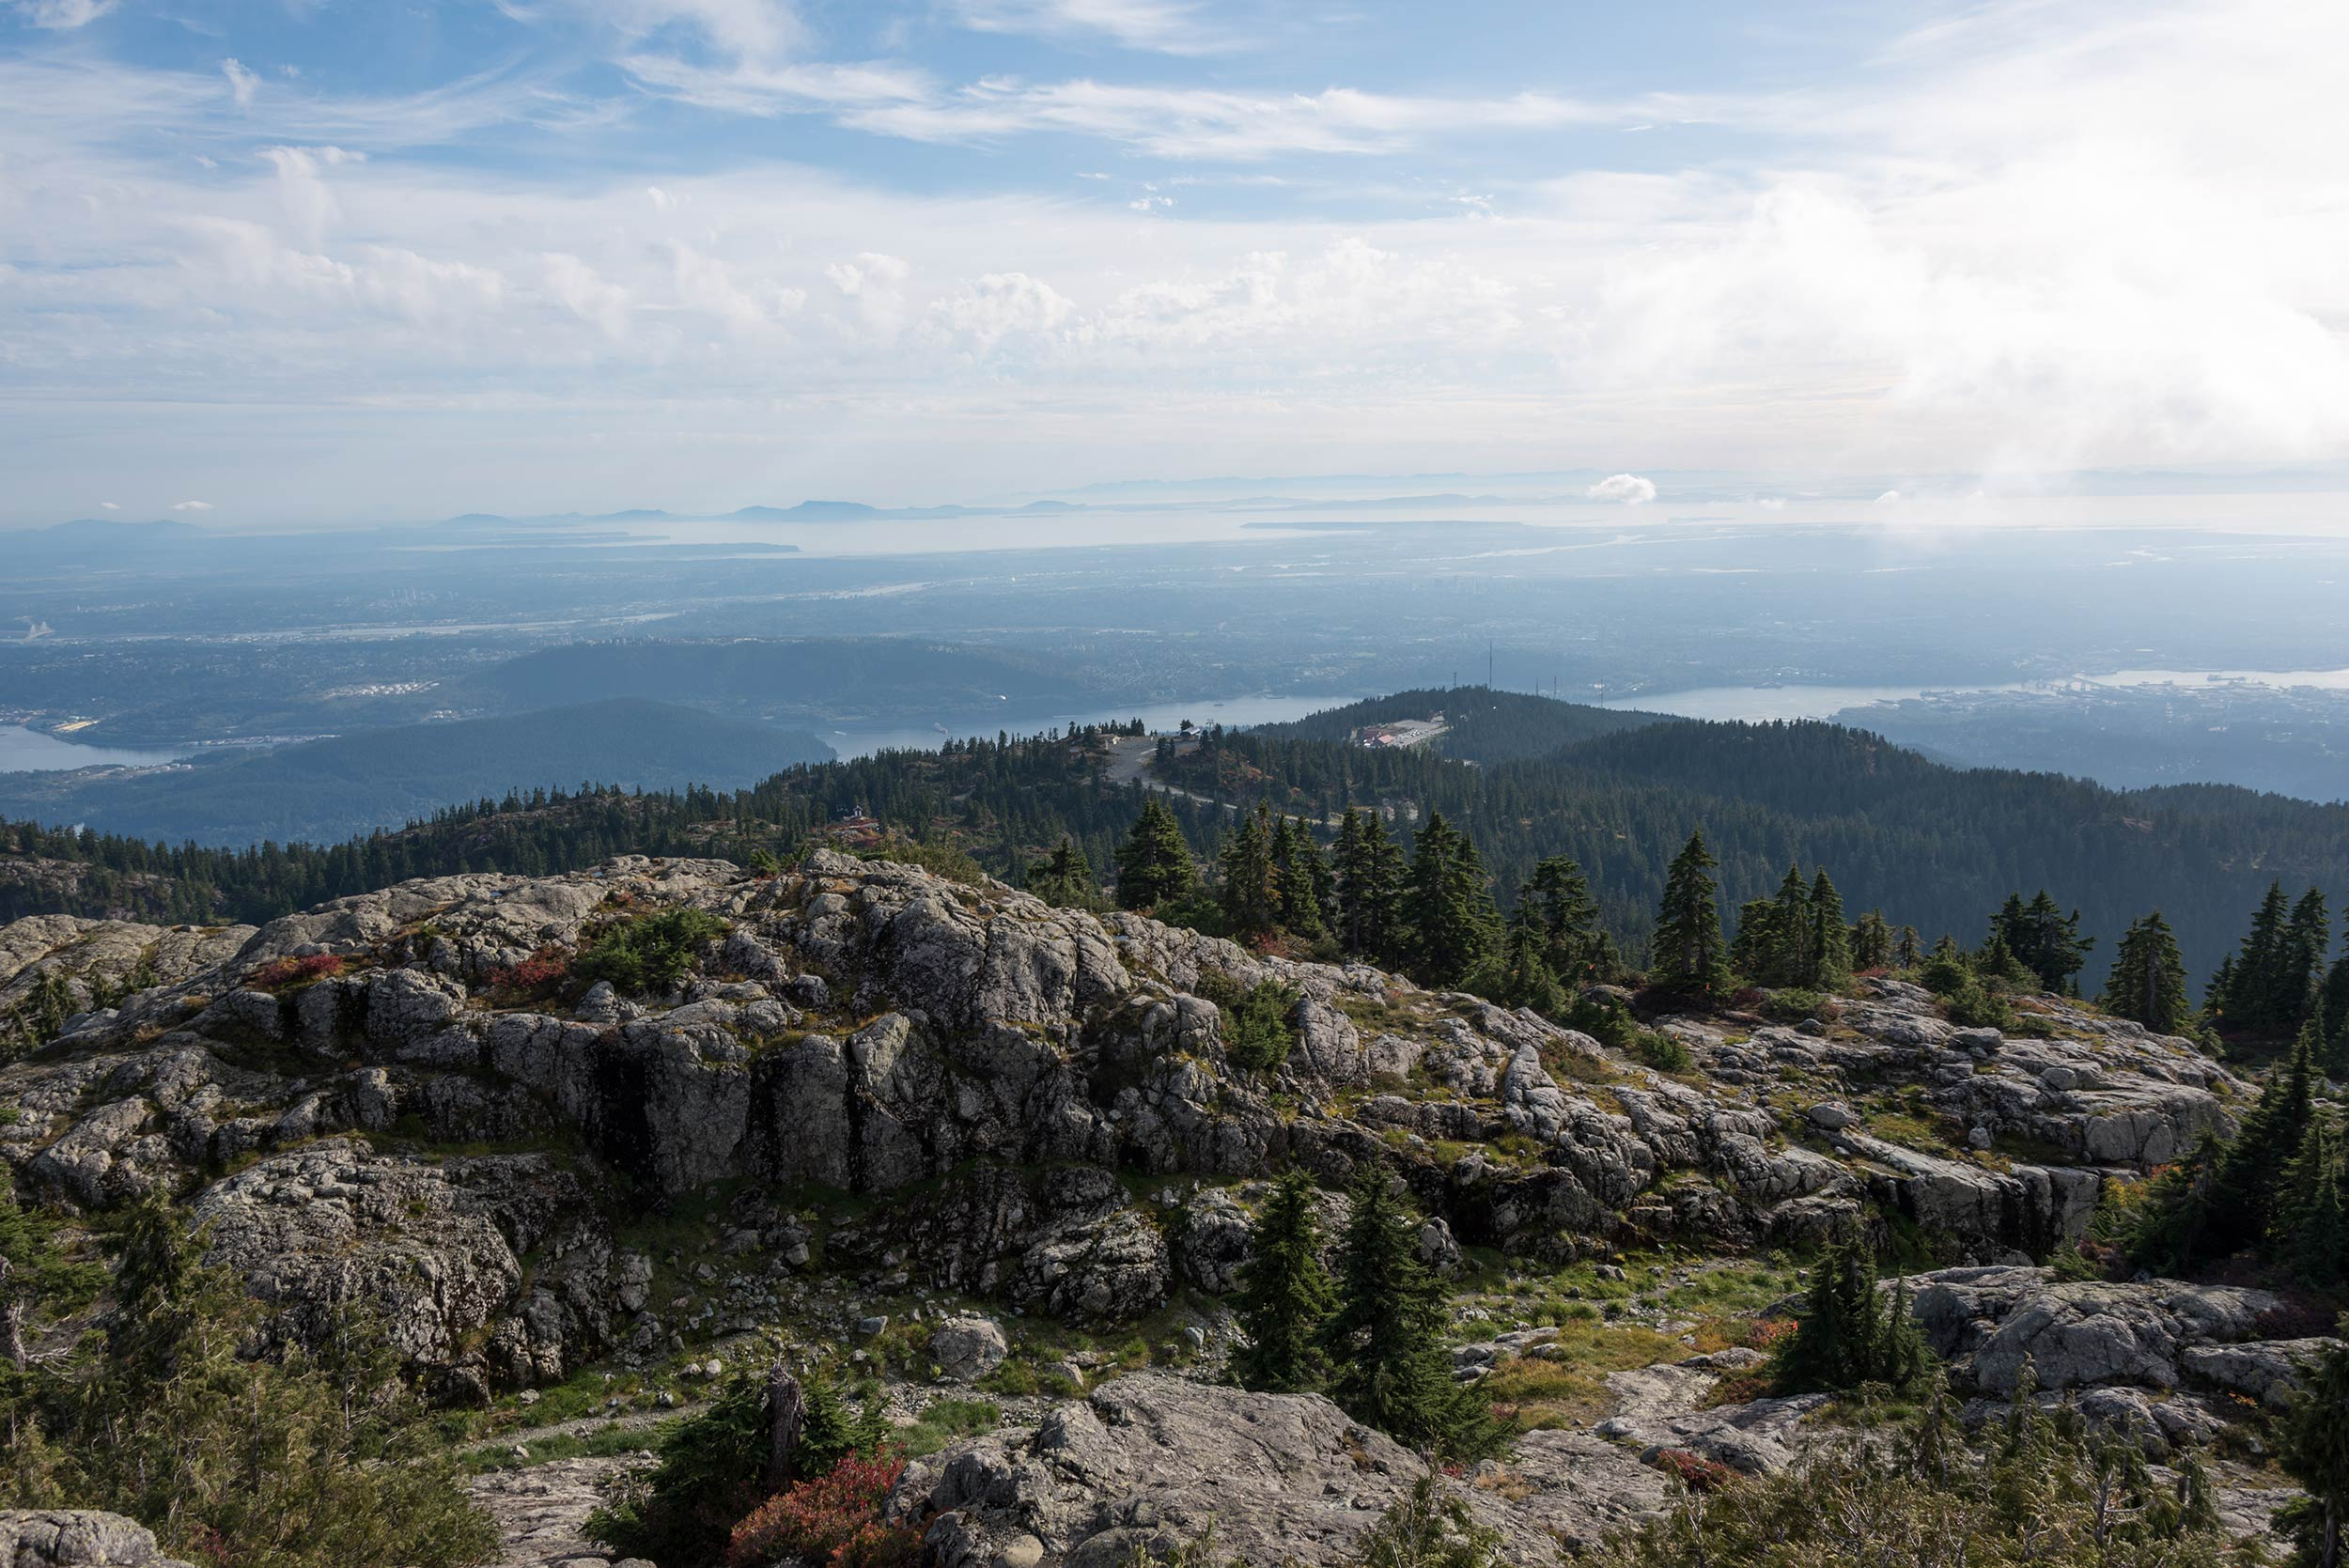 mt_seymour_pumps_cityscape3.jpg